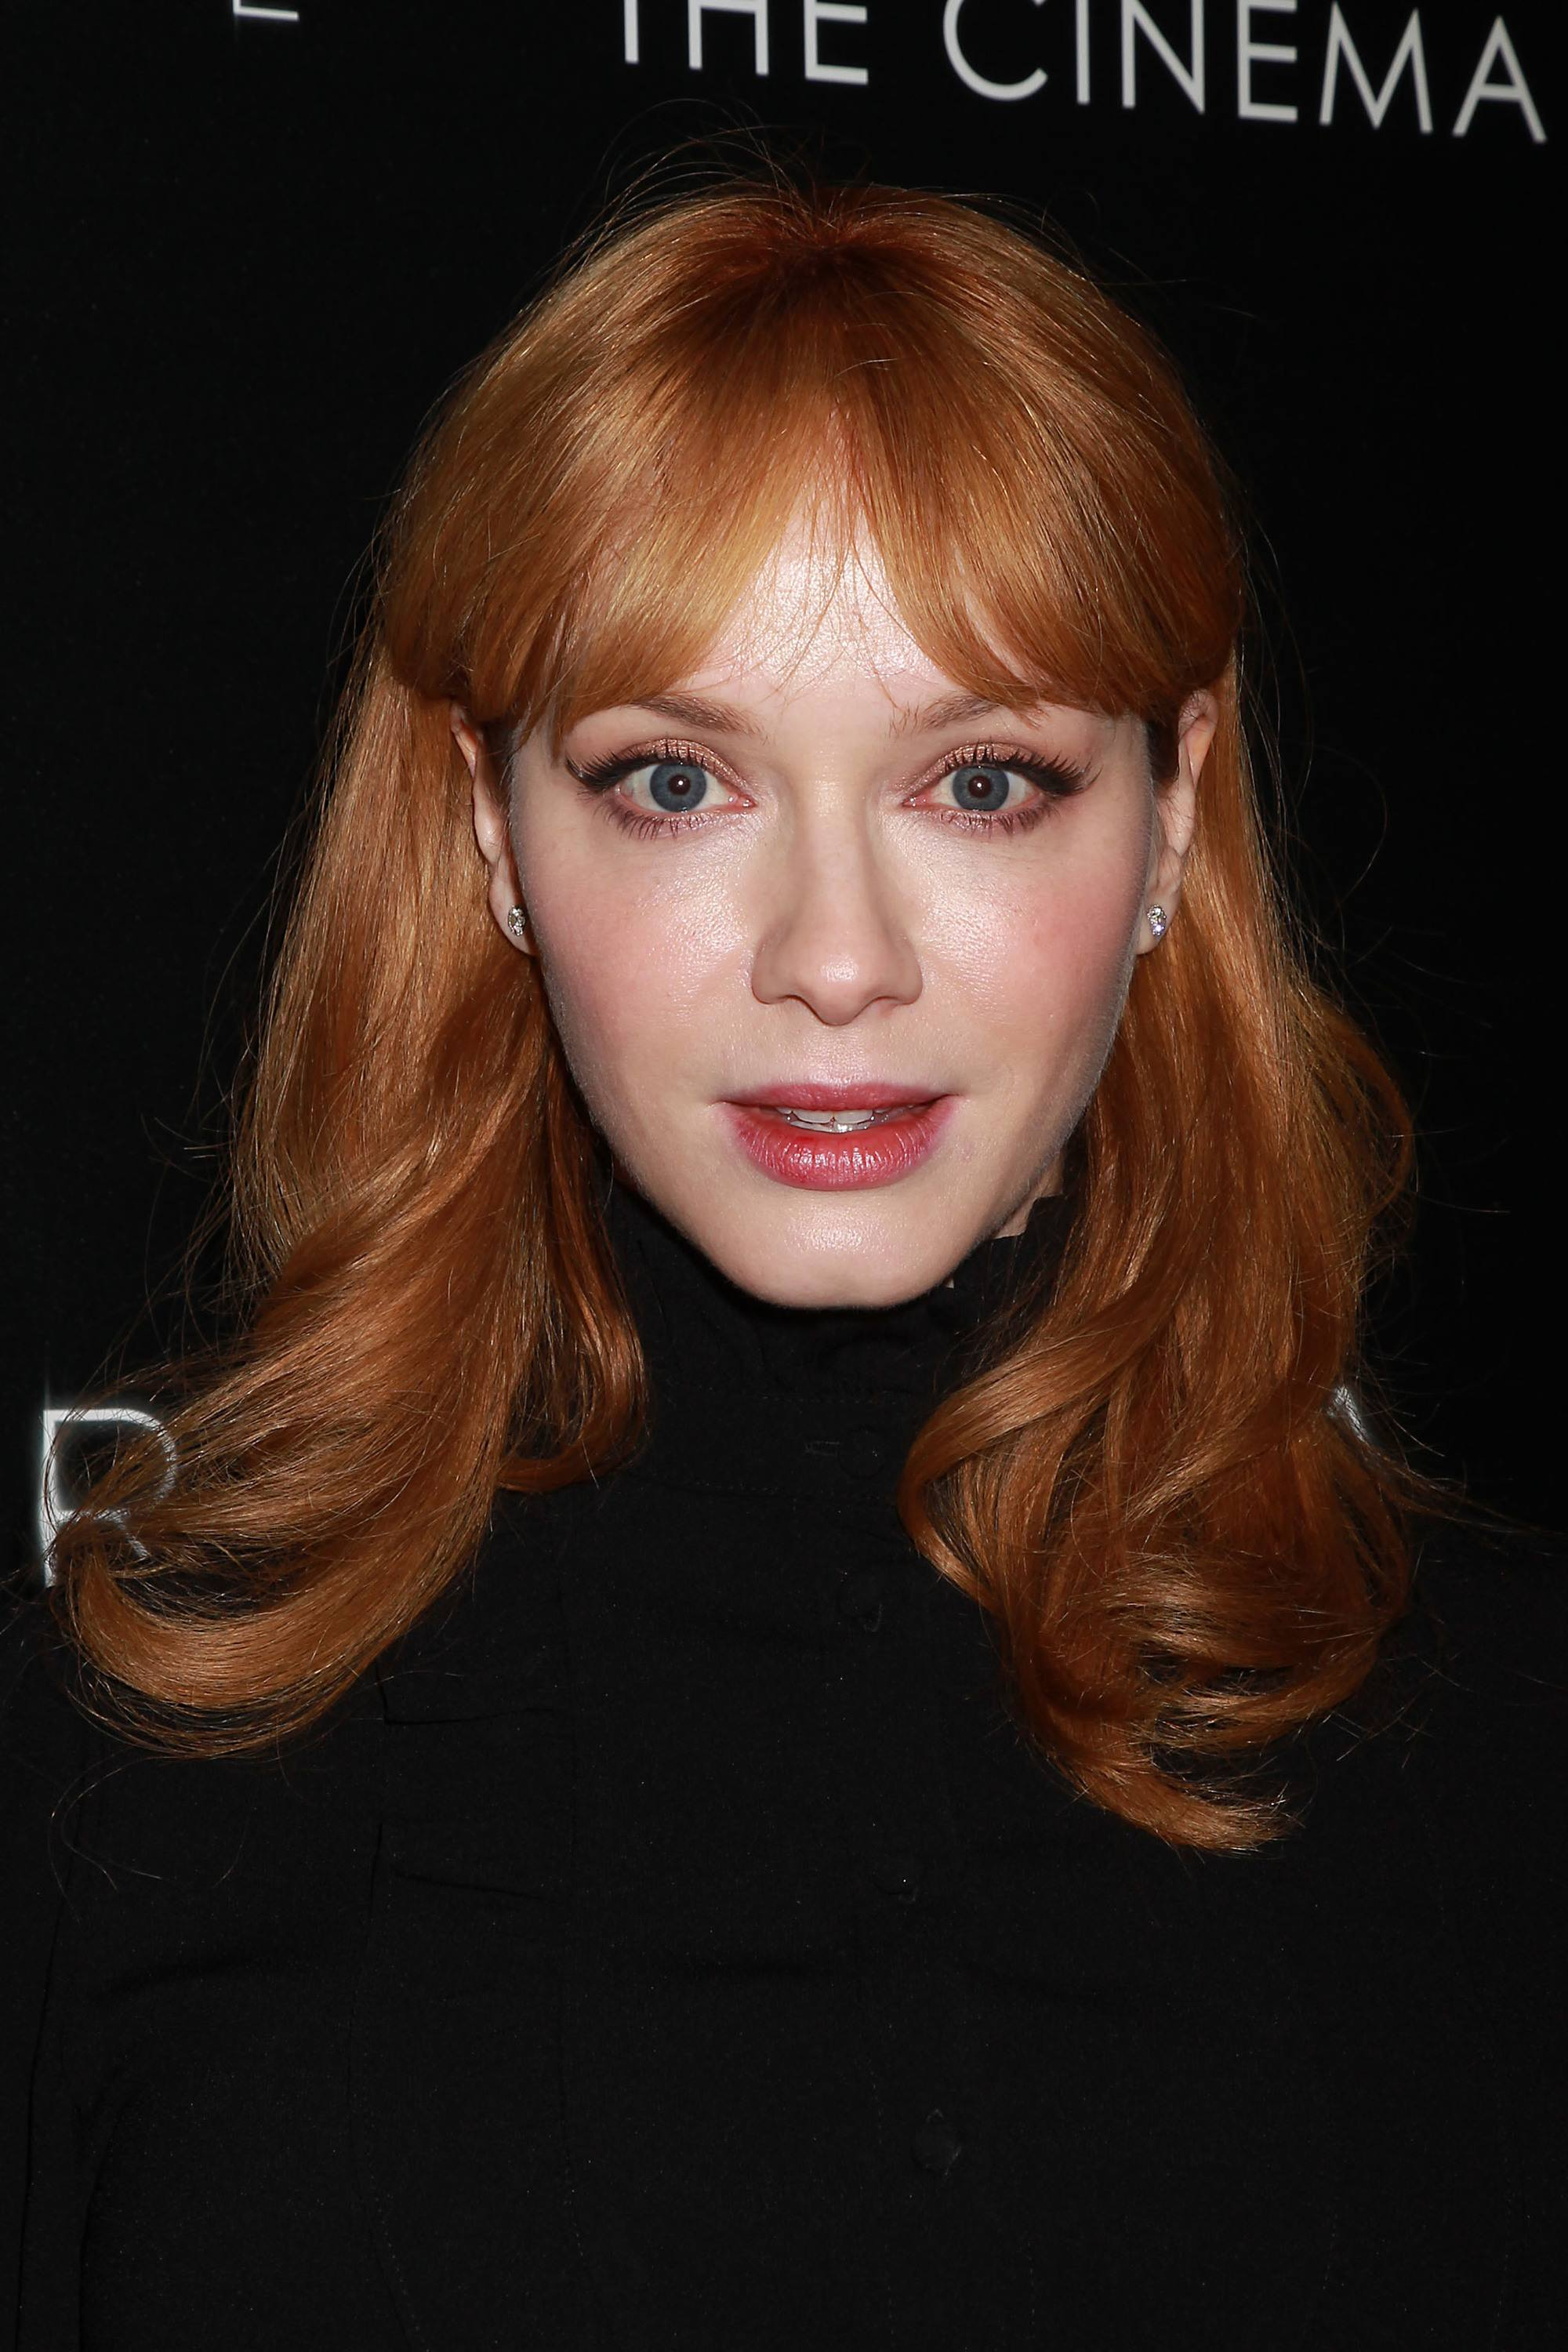 christina hendricks with curly red hair with a split fringe